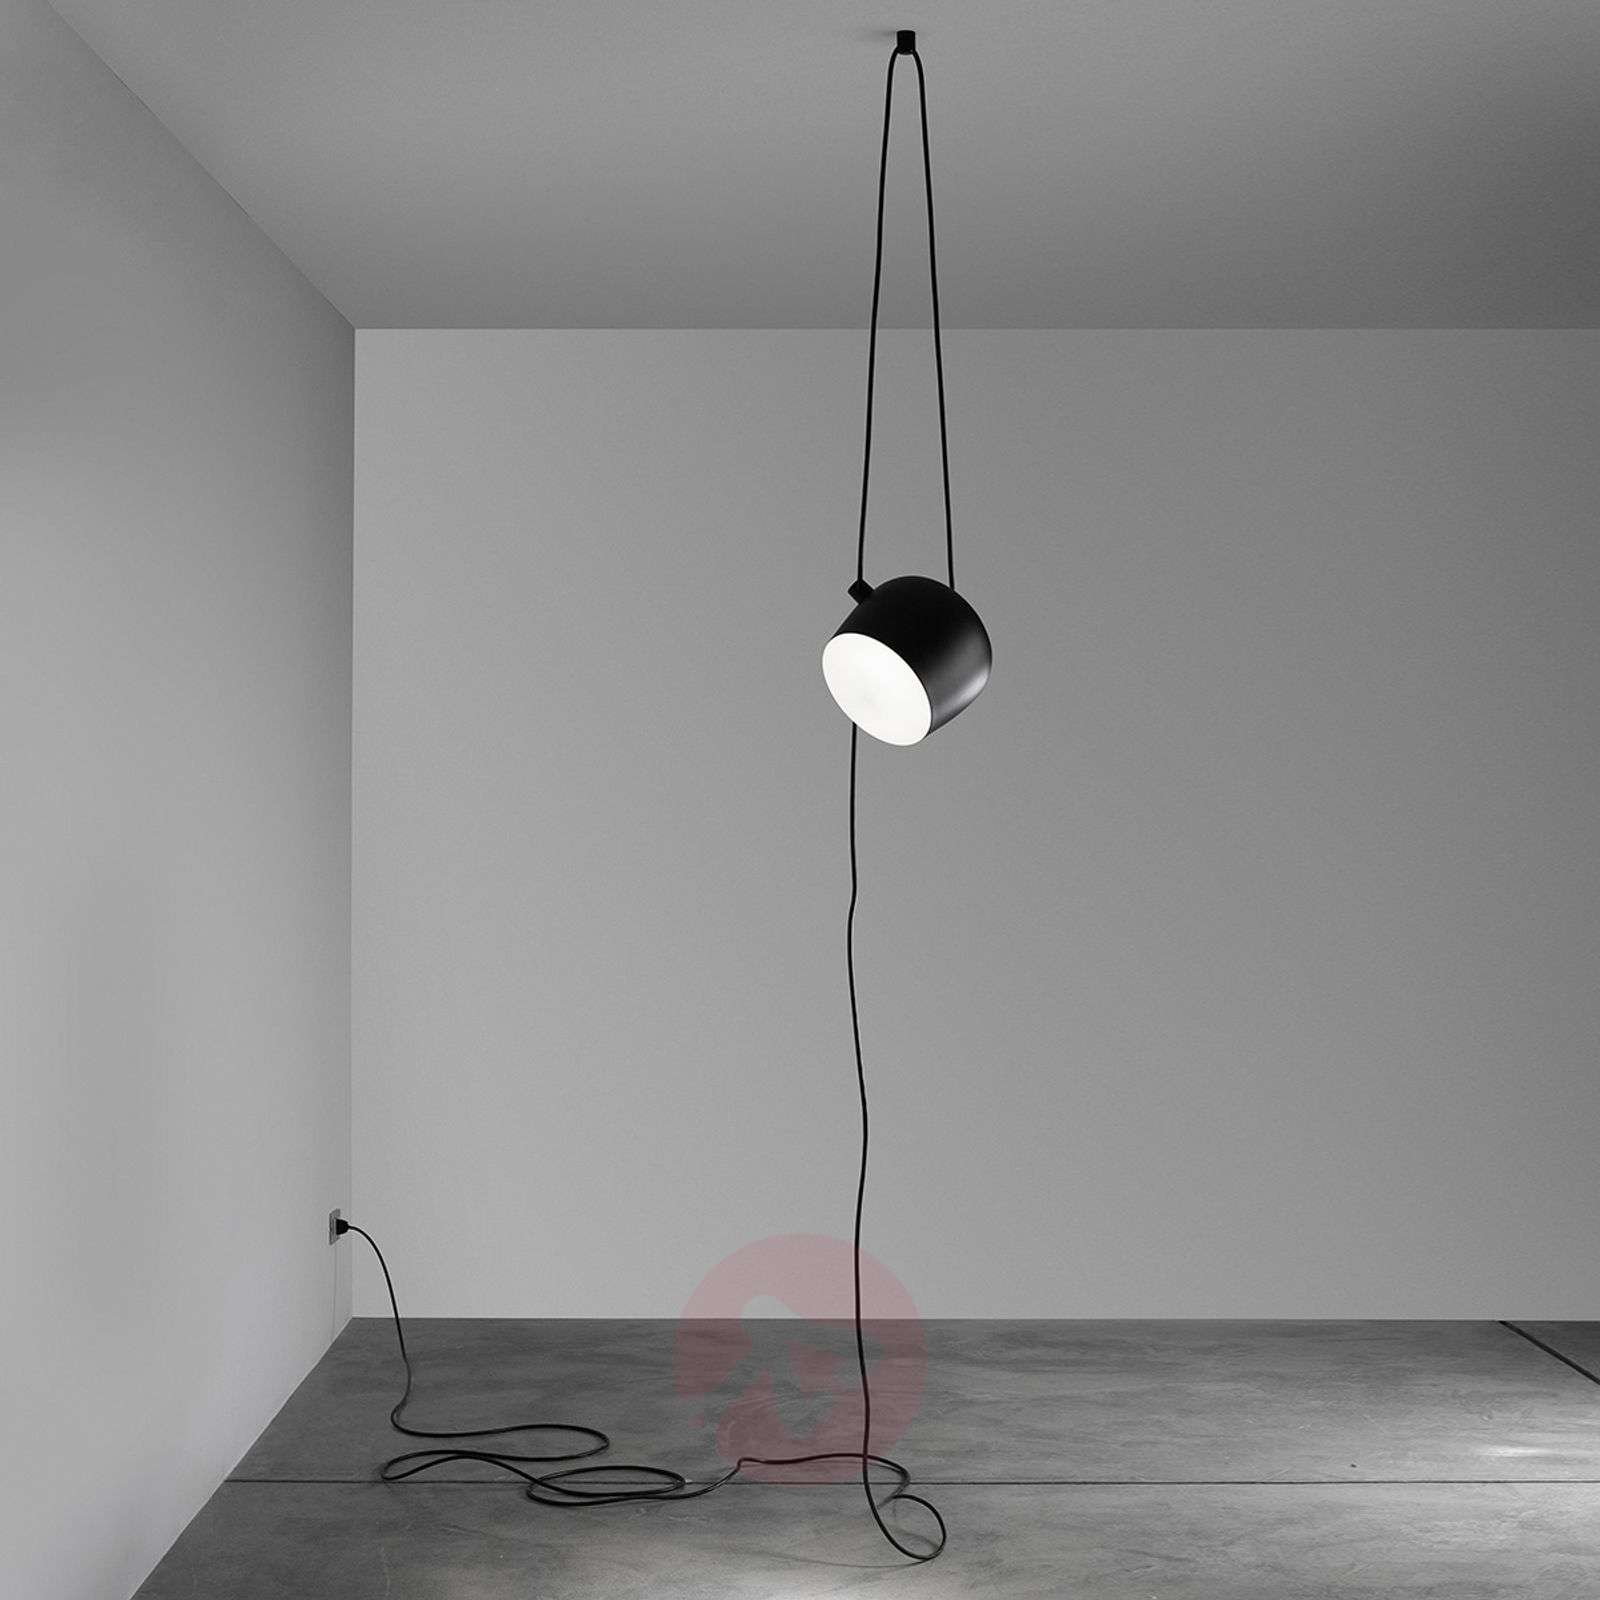 Aim small switch dim eur black pendant light lights aim small switch dim eur black pendant light 3510325 06 mozeypictures Choice Image